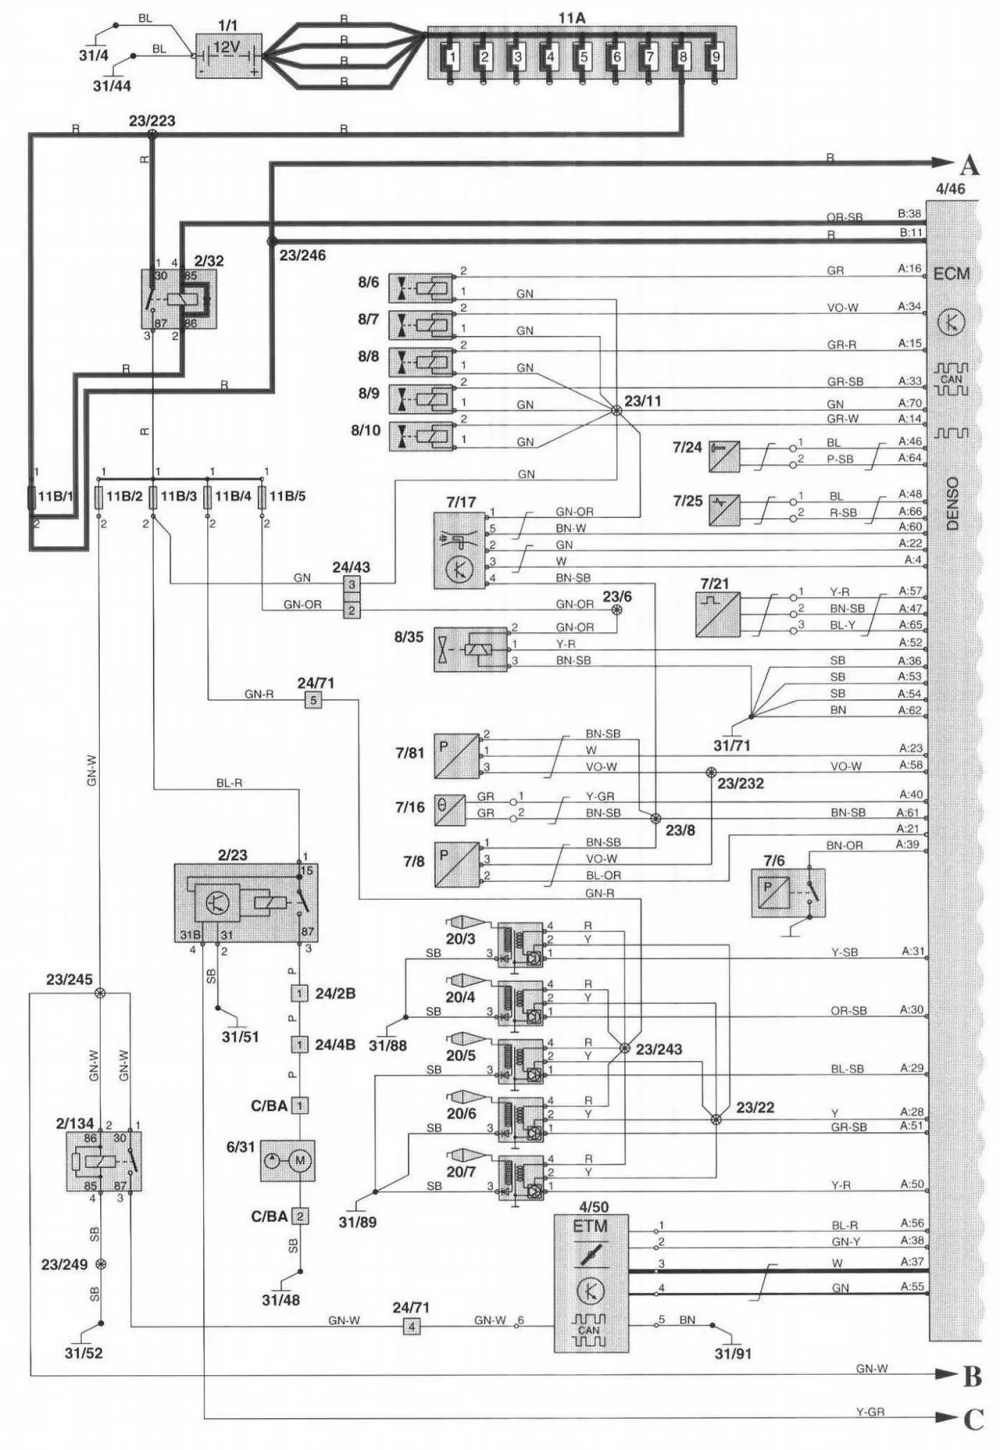 medium resolution of fuse box in volvo s40 2001 wiring diagram centre 2005 volvo xc90 power seat fuses on 2000 volvo s40 headlight wiring